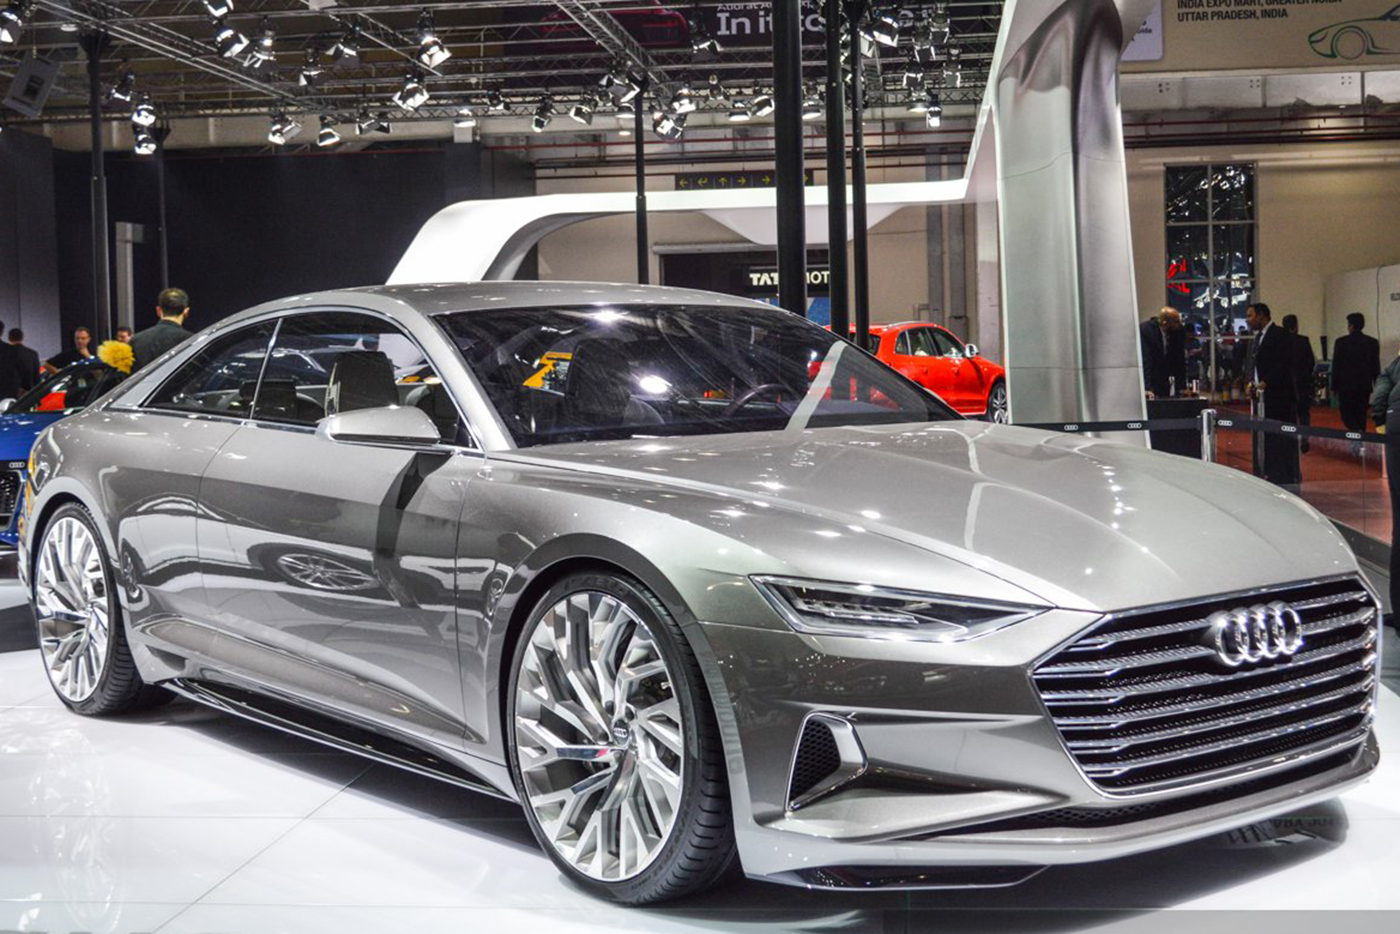 audi-prologue-allroad-concept-front-three-quarters-at-auto-expo-2016.jpg